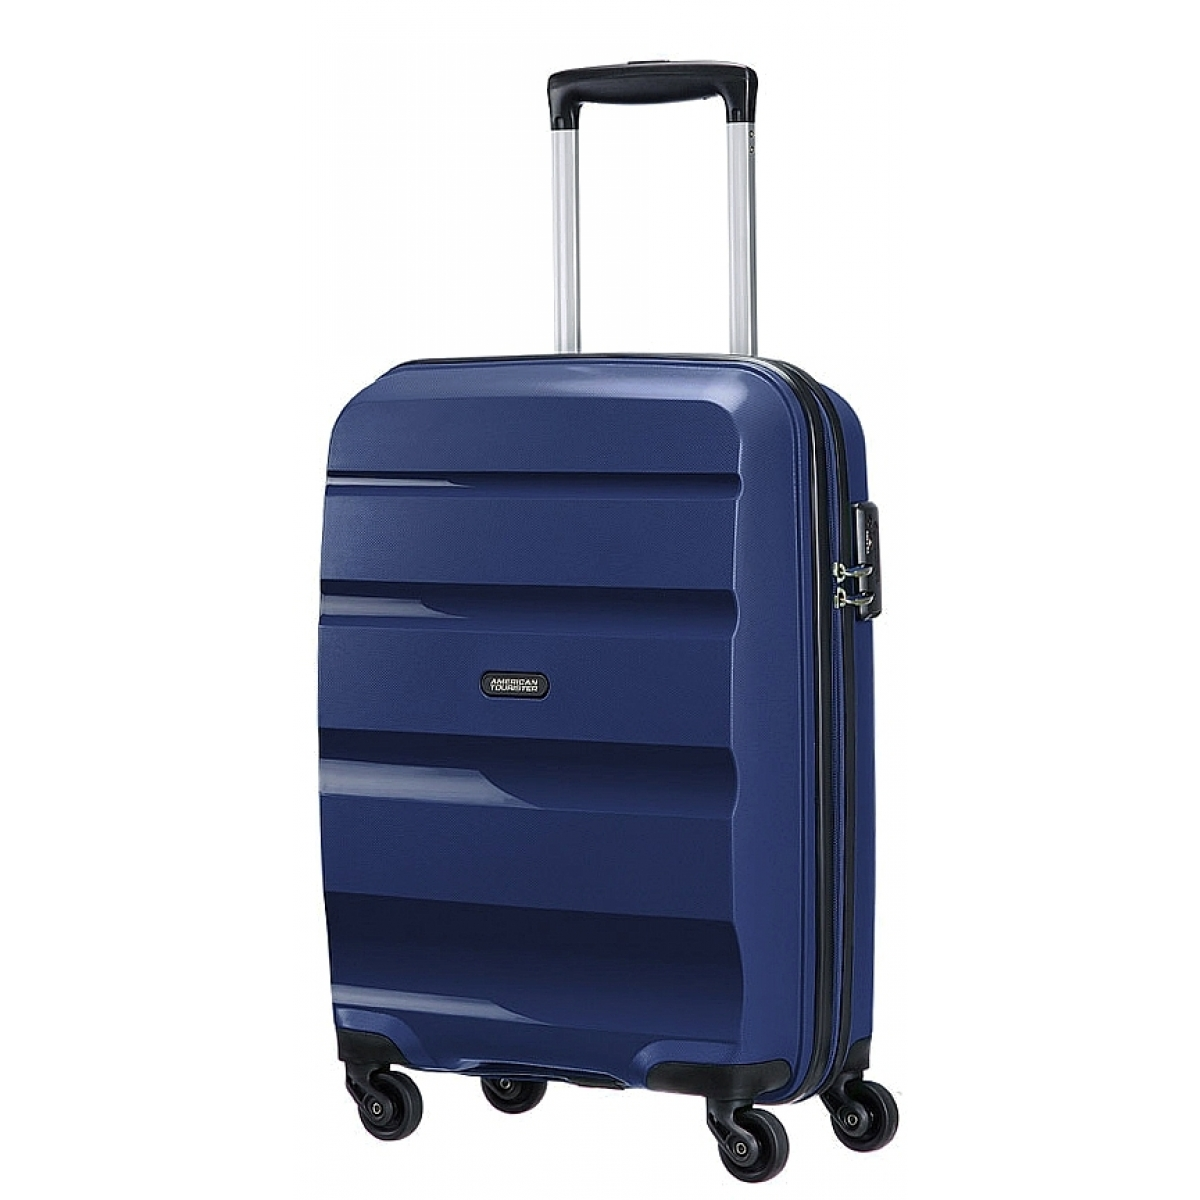 valise cabine bon air american tourister 55cm bonair22 couleur principale navy valise. Black Bedroom Furniture Sets. Home Design Ideas